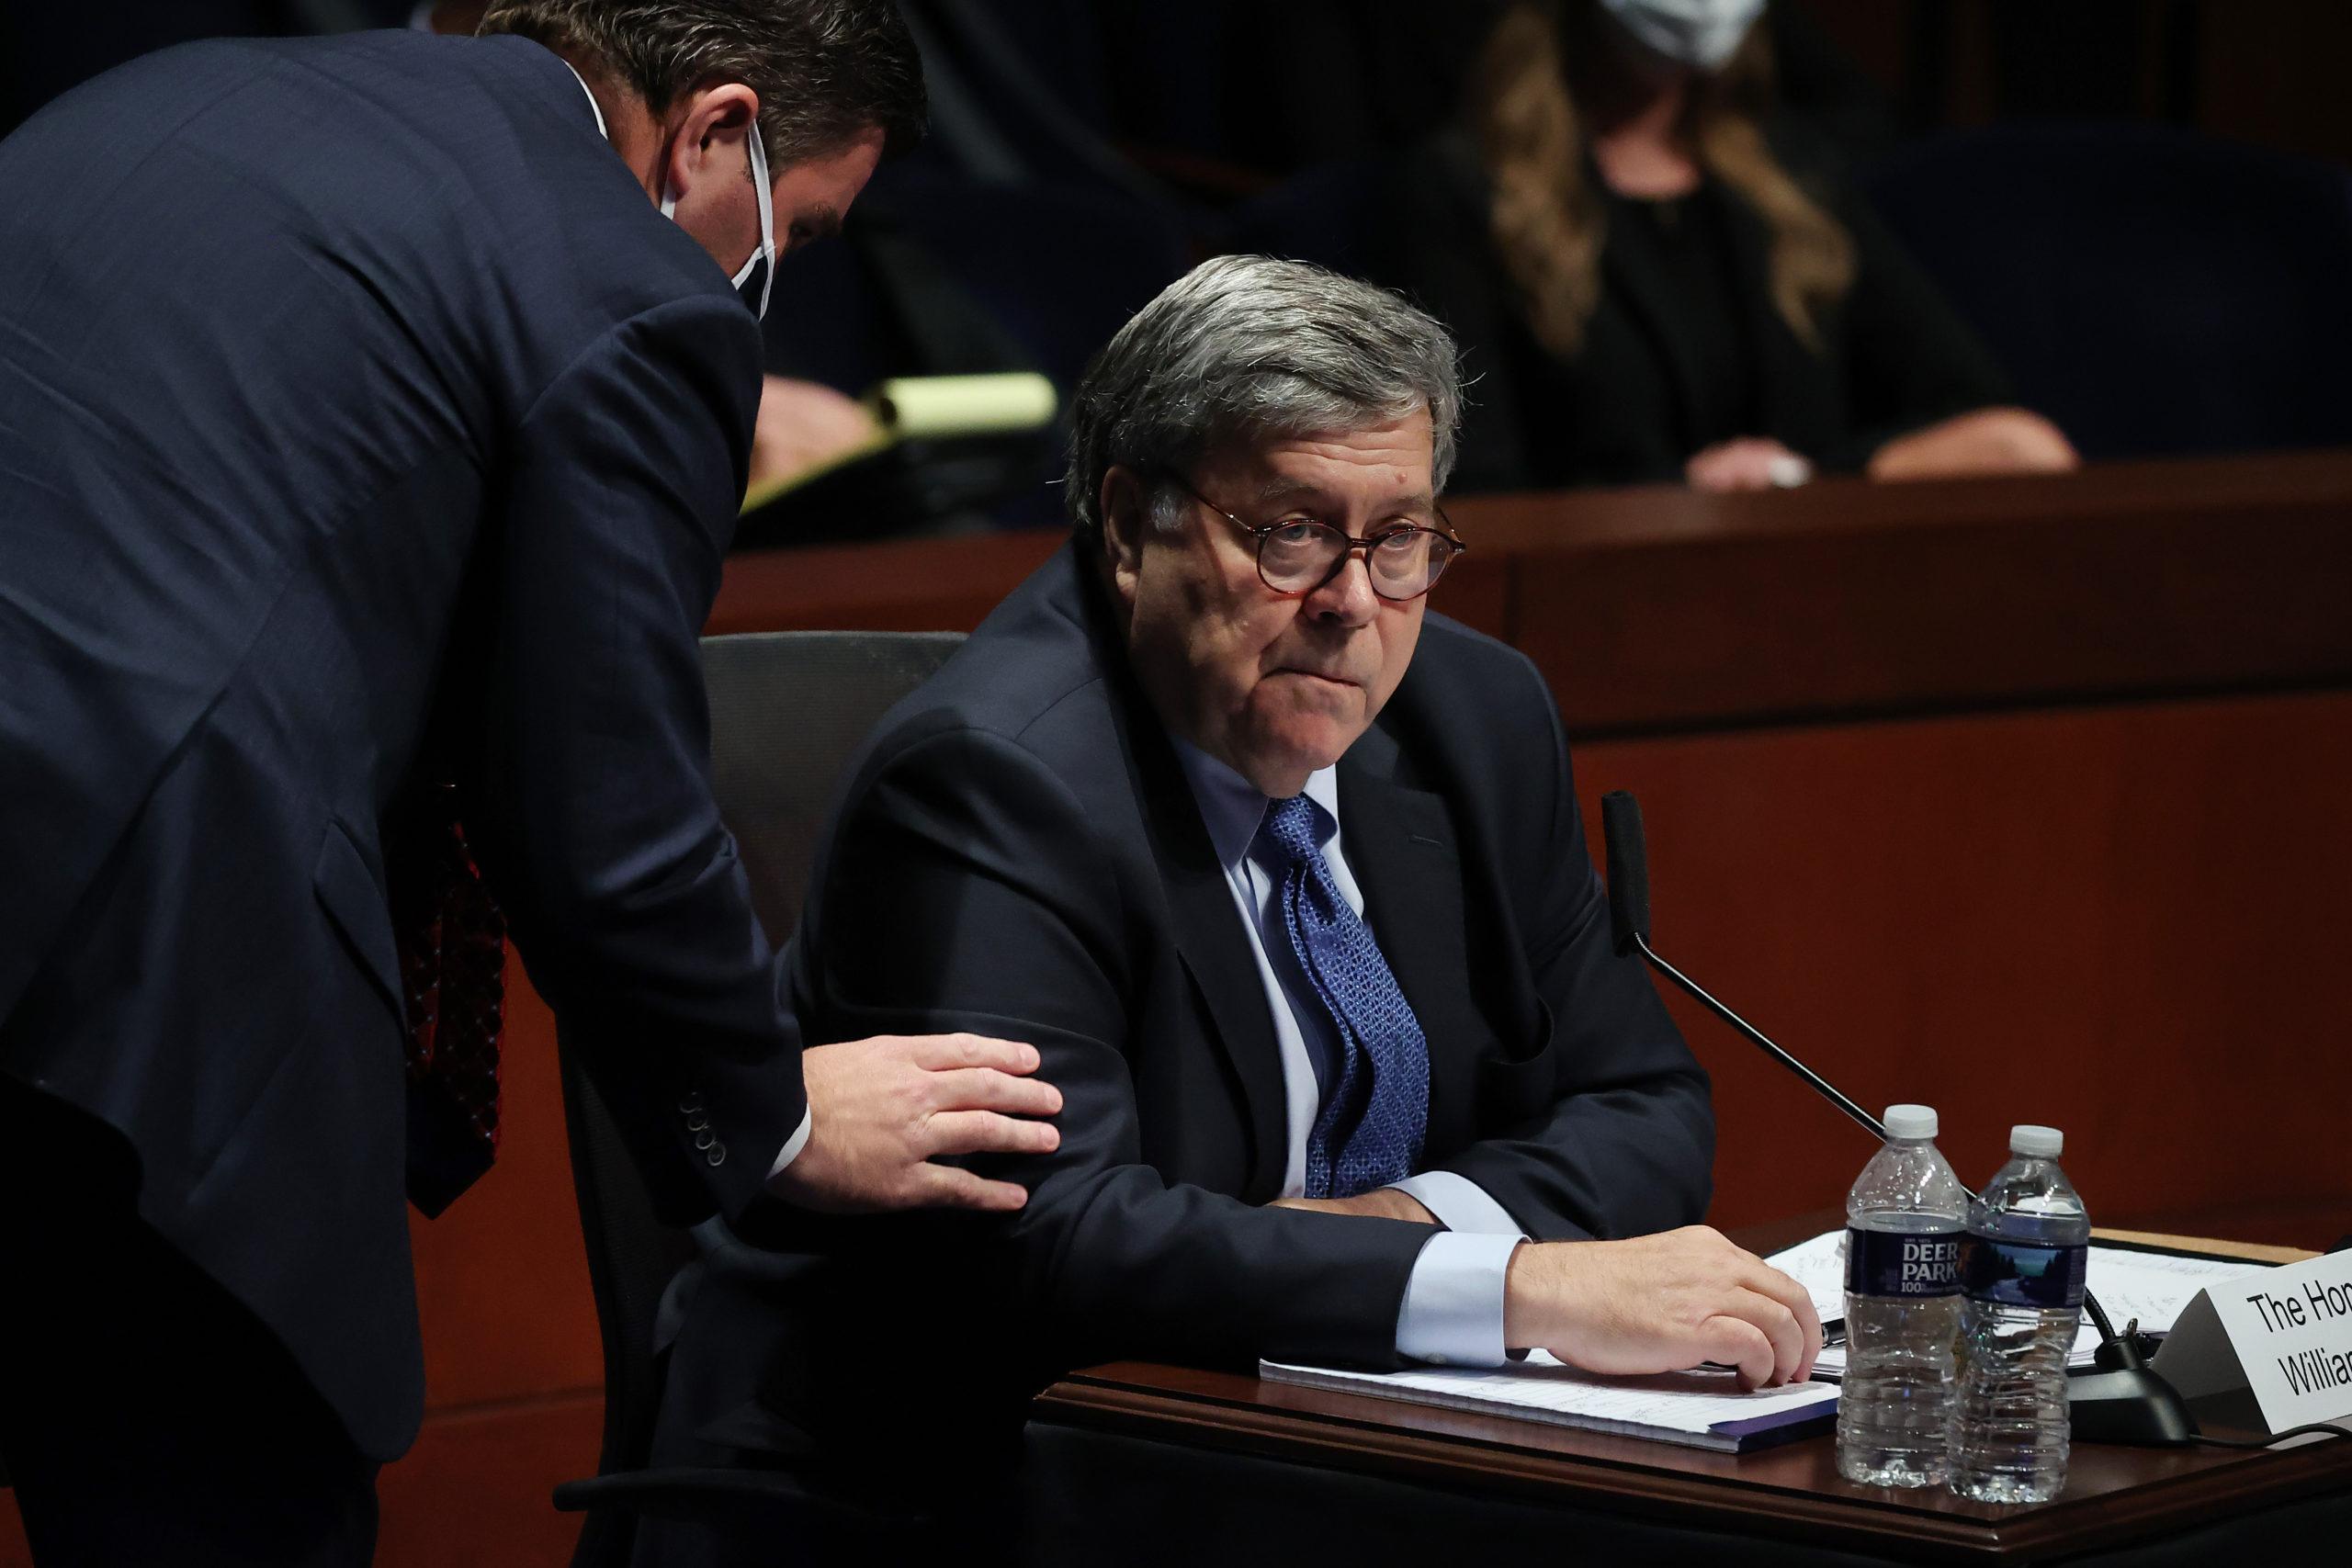 U.S. Attorney General William Barr hears from Assistant Attorney General for Legislative Affairs Stephen Boyd as Barr testifies before the House Judiciary Committee in the Congressional Auditorium at the U.S. Capitol Visitors Center July 28, 2020 in Washington, DC. (Chip Somodevilla/Getty Images)